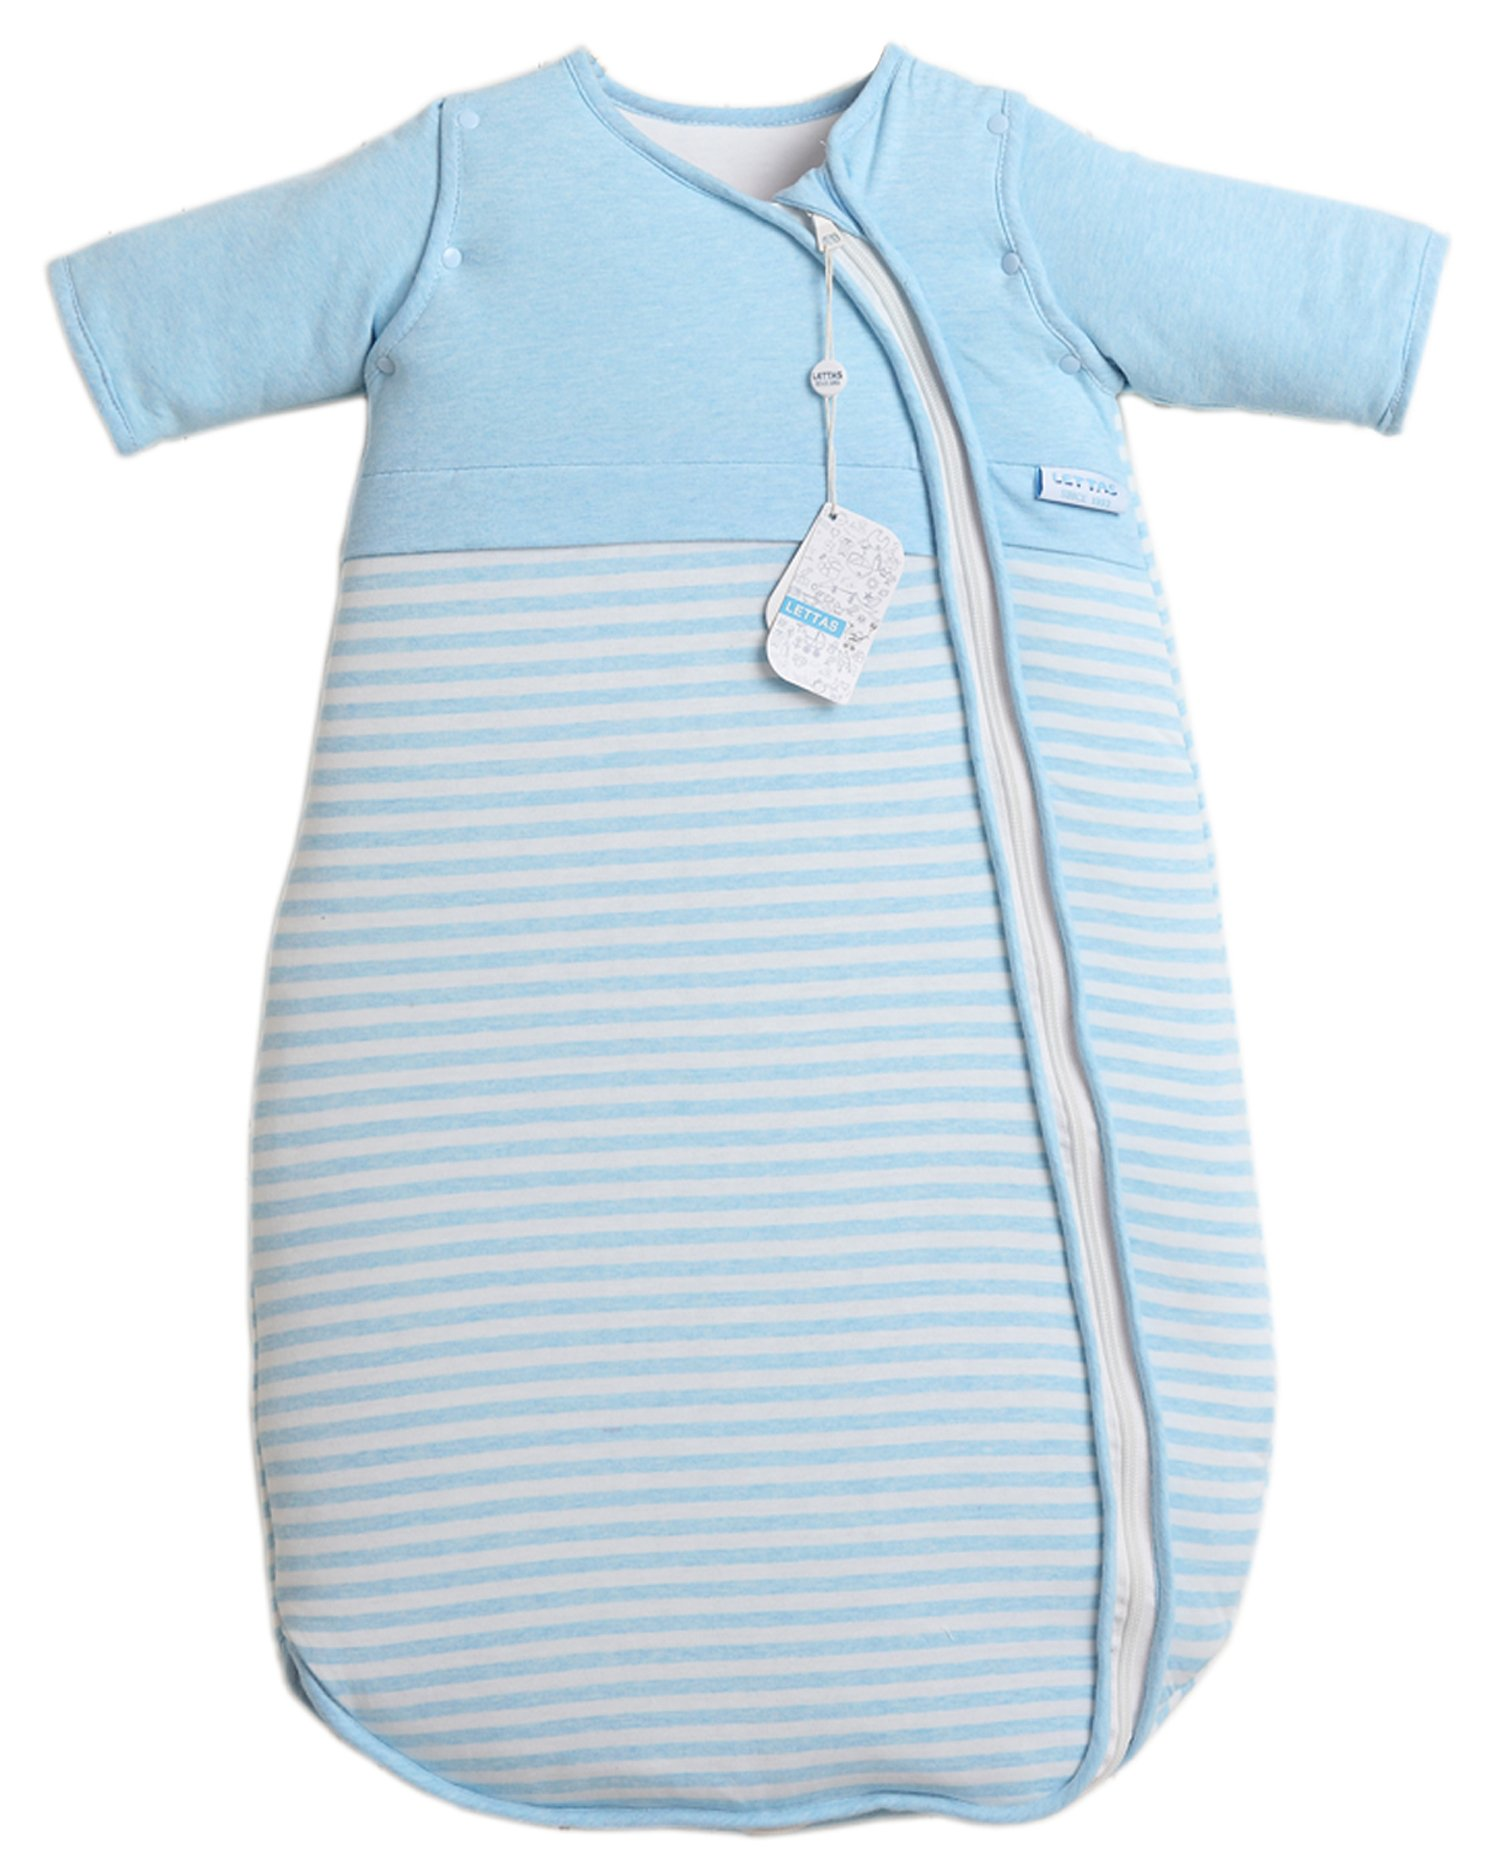 LETTAS Unisex Baby Cotton Removable Long Sleeve Zip up Sleeping Bag Thicken Autumn Winter Blue (12-24 Months,M)